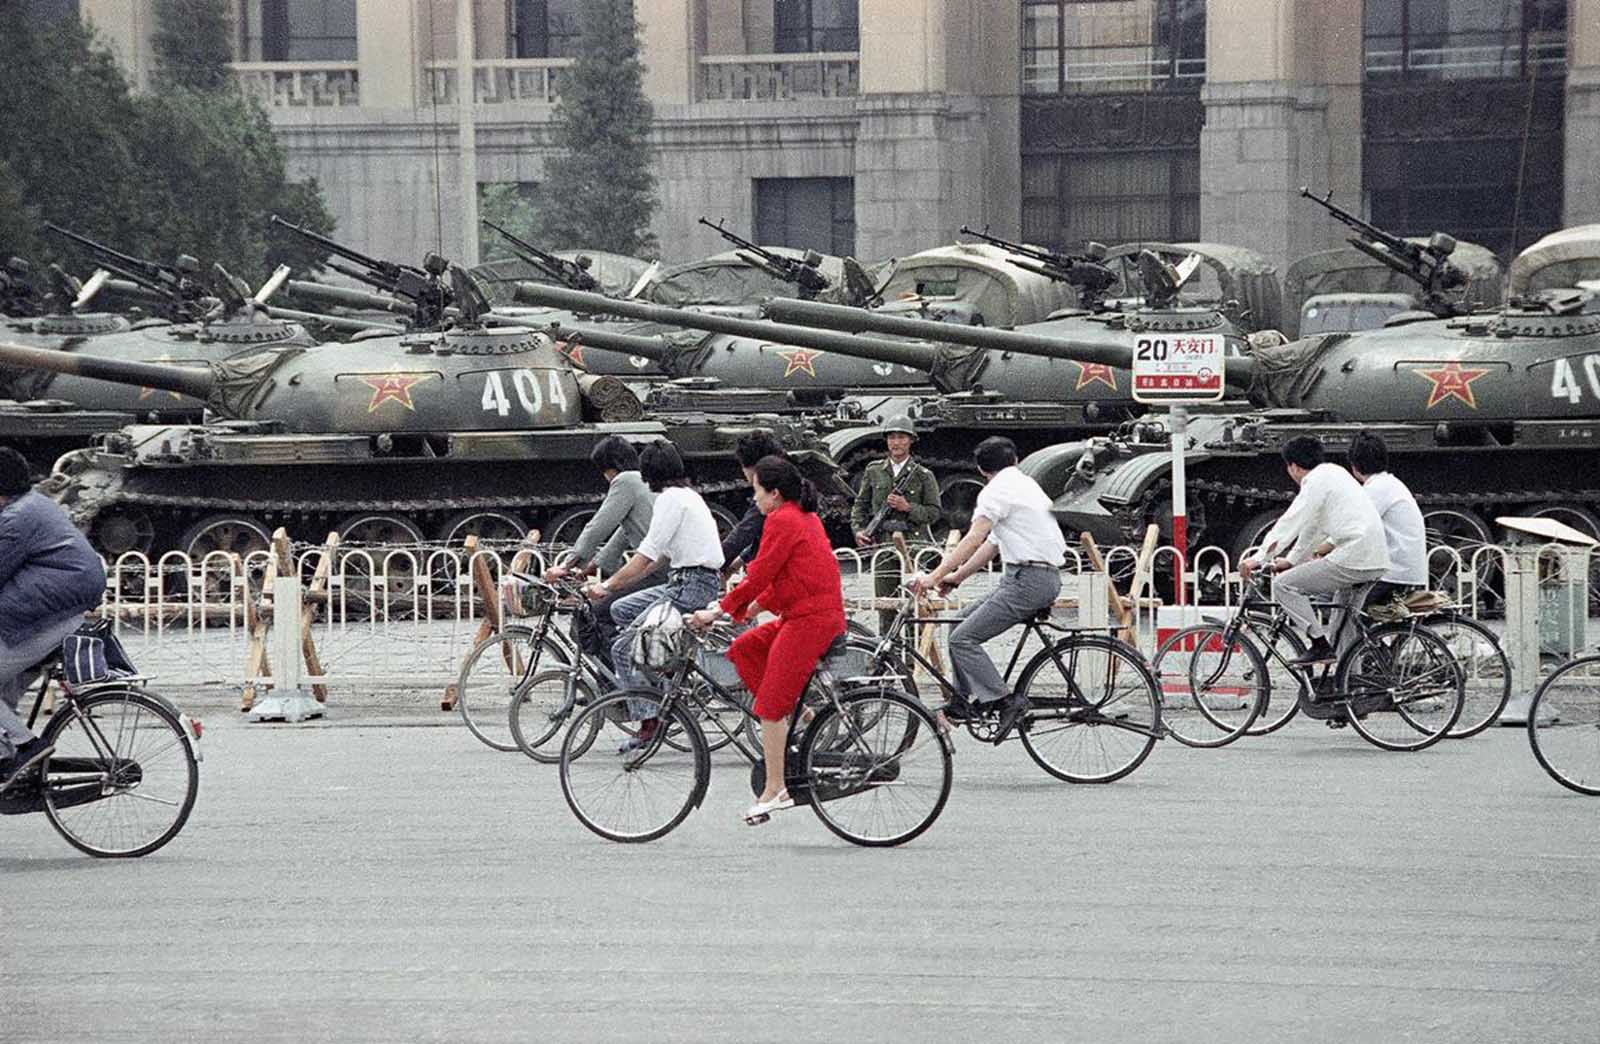 A wall of tanks and APCs greet bicycle commuters near Tiananmen Square, on June 13, 1989, in Beijing.